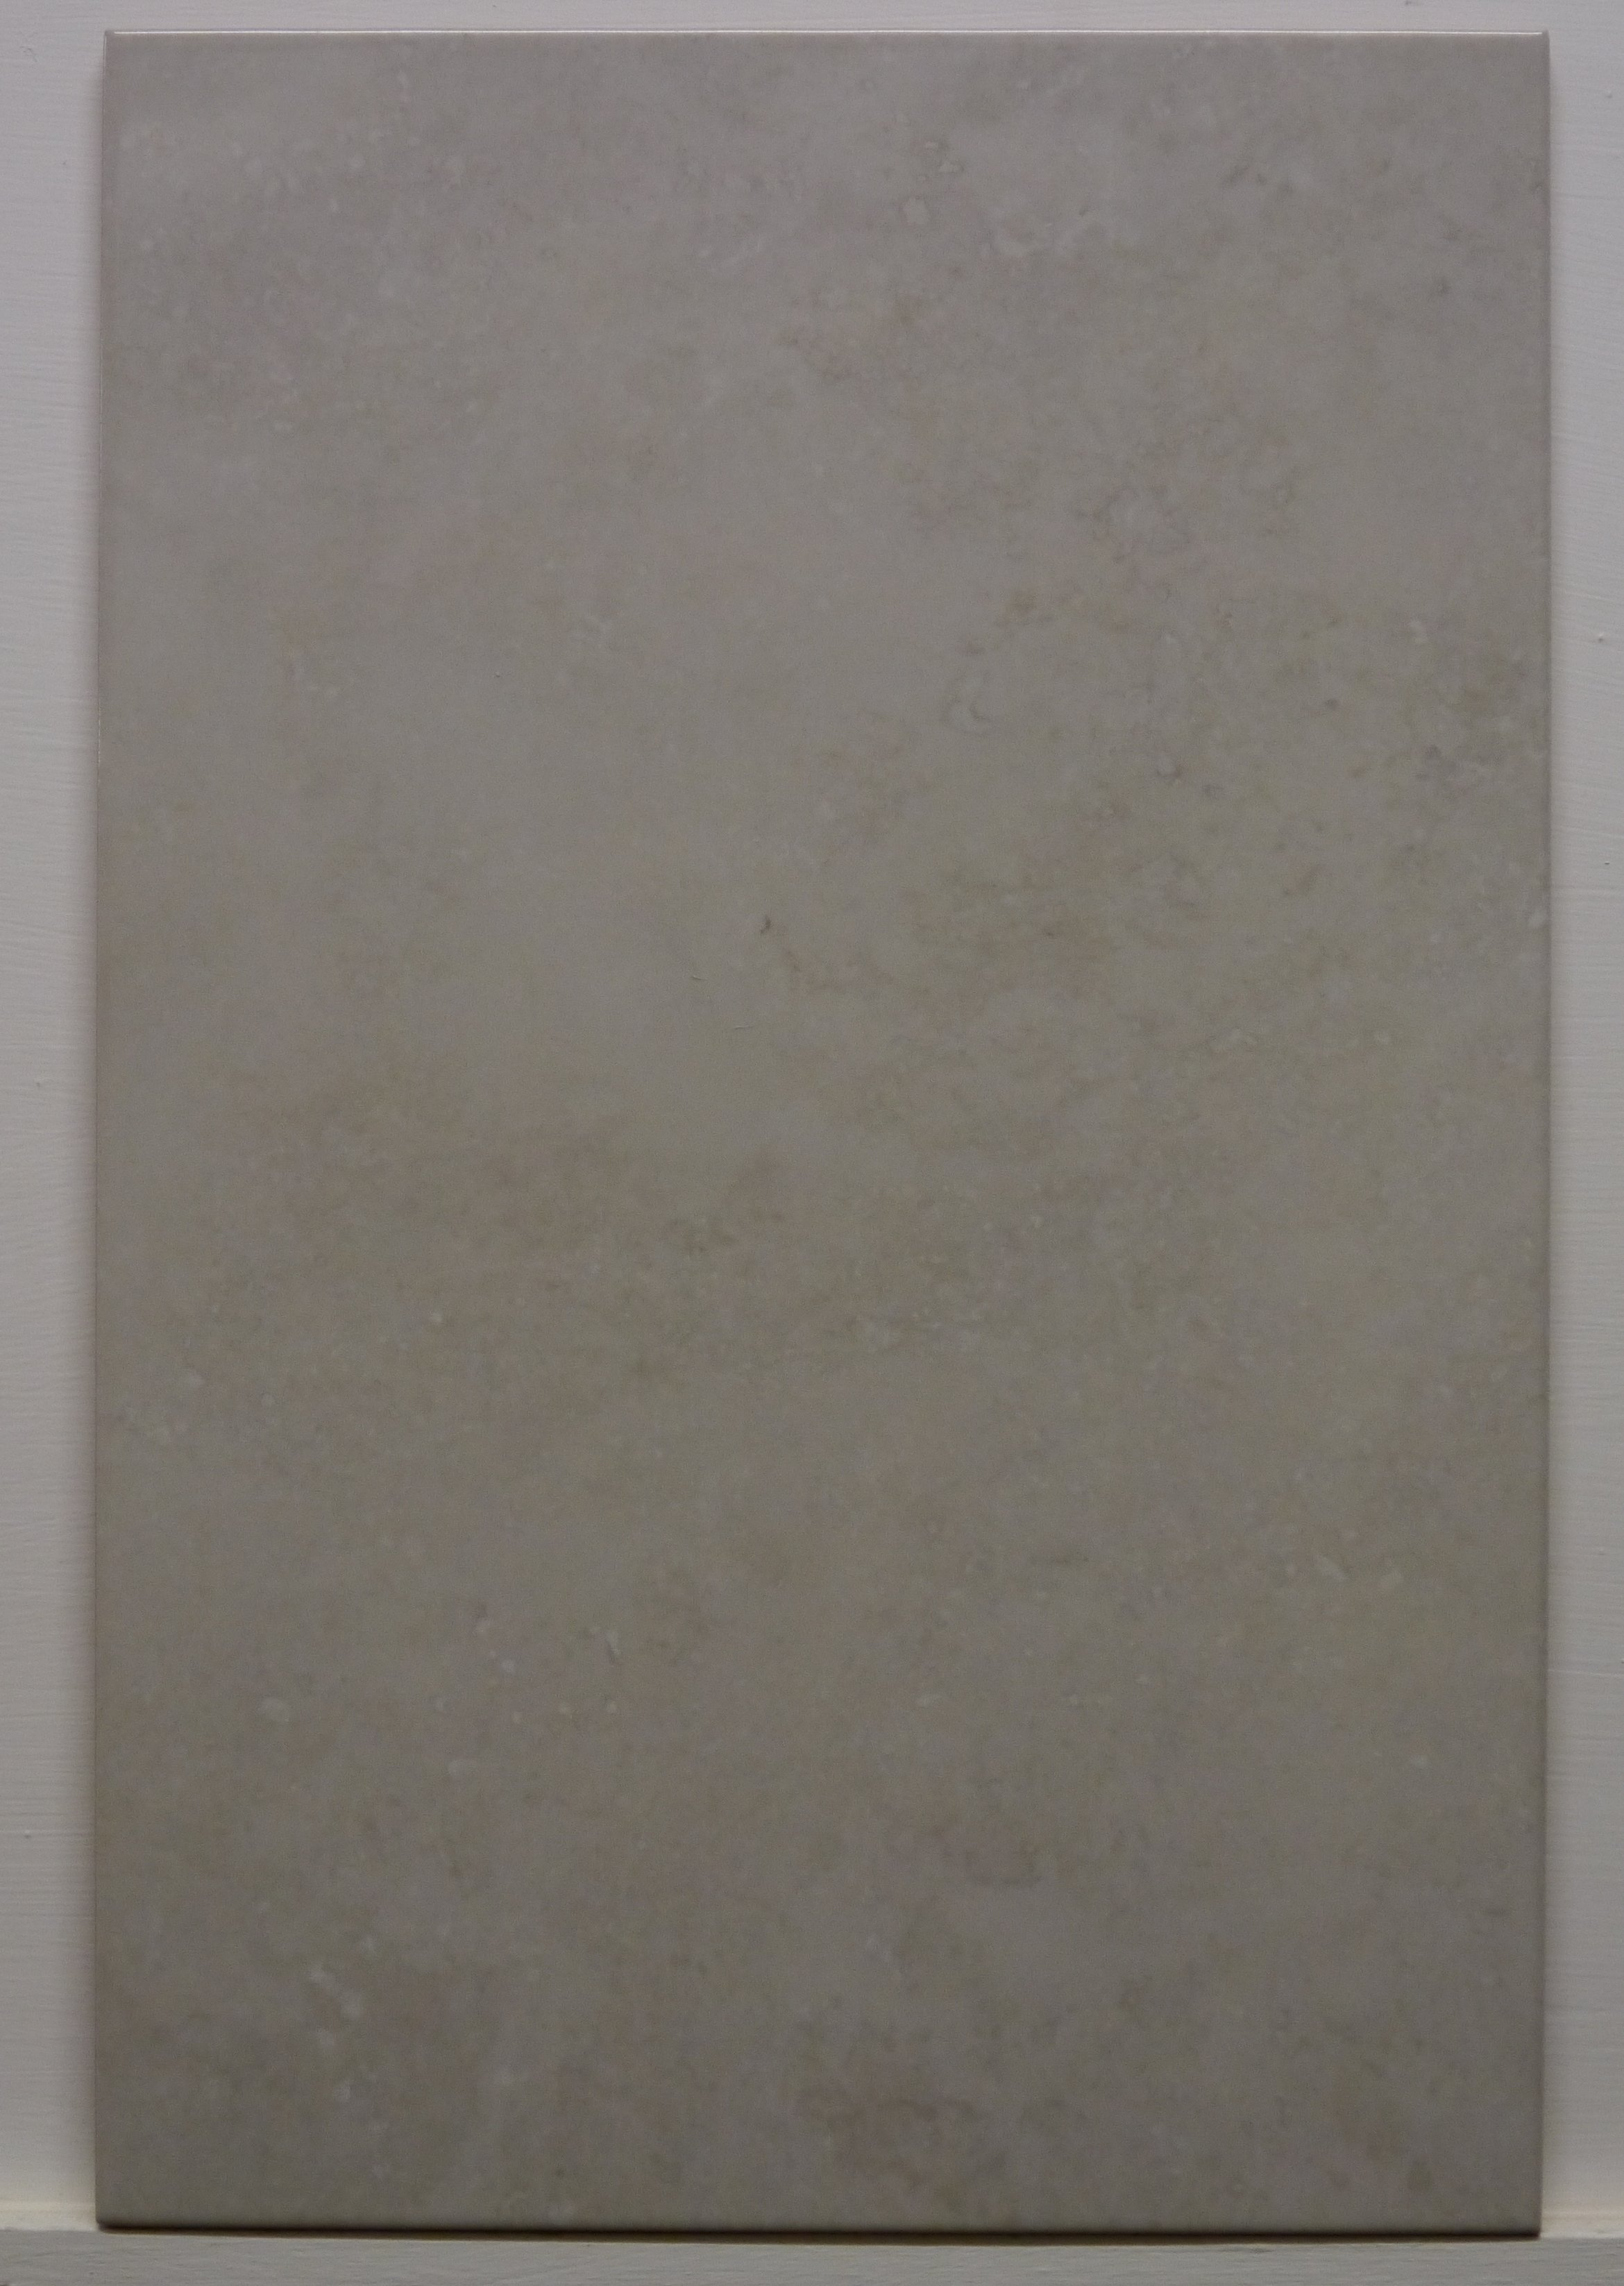 M9157 316mm x 480mm fez light taupe ceramic wall tile the tile warehouse maldon essex - Wall taupe ...